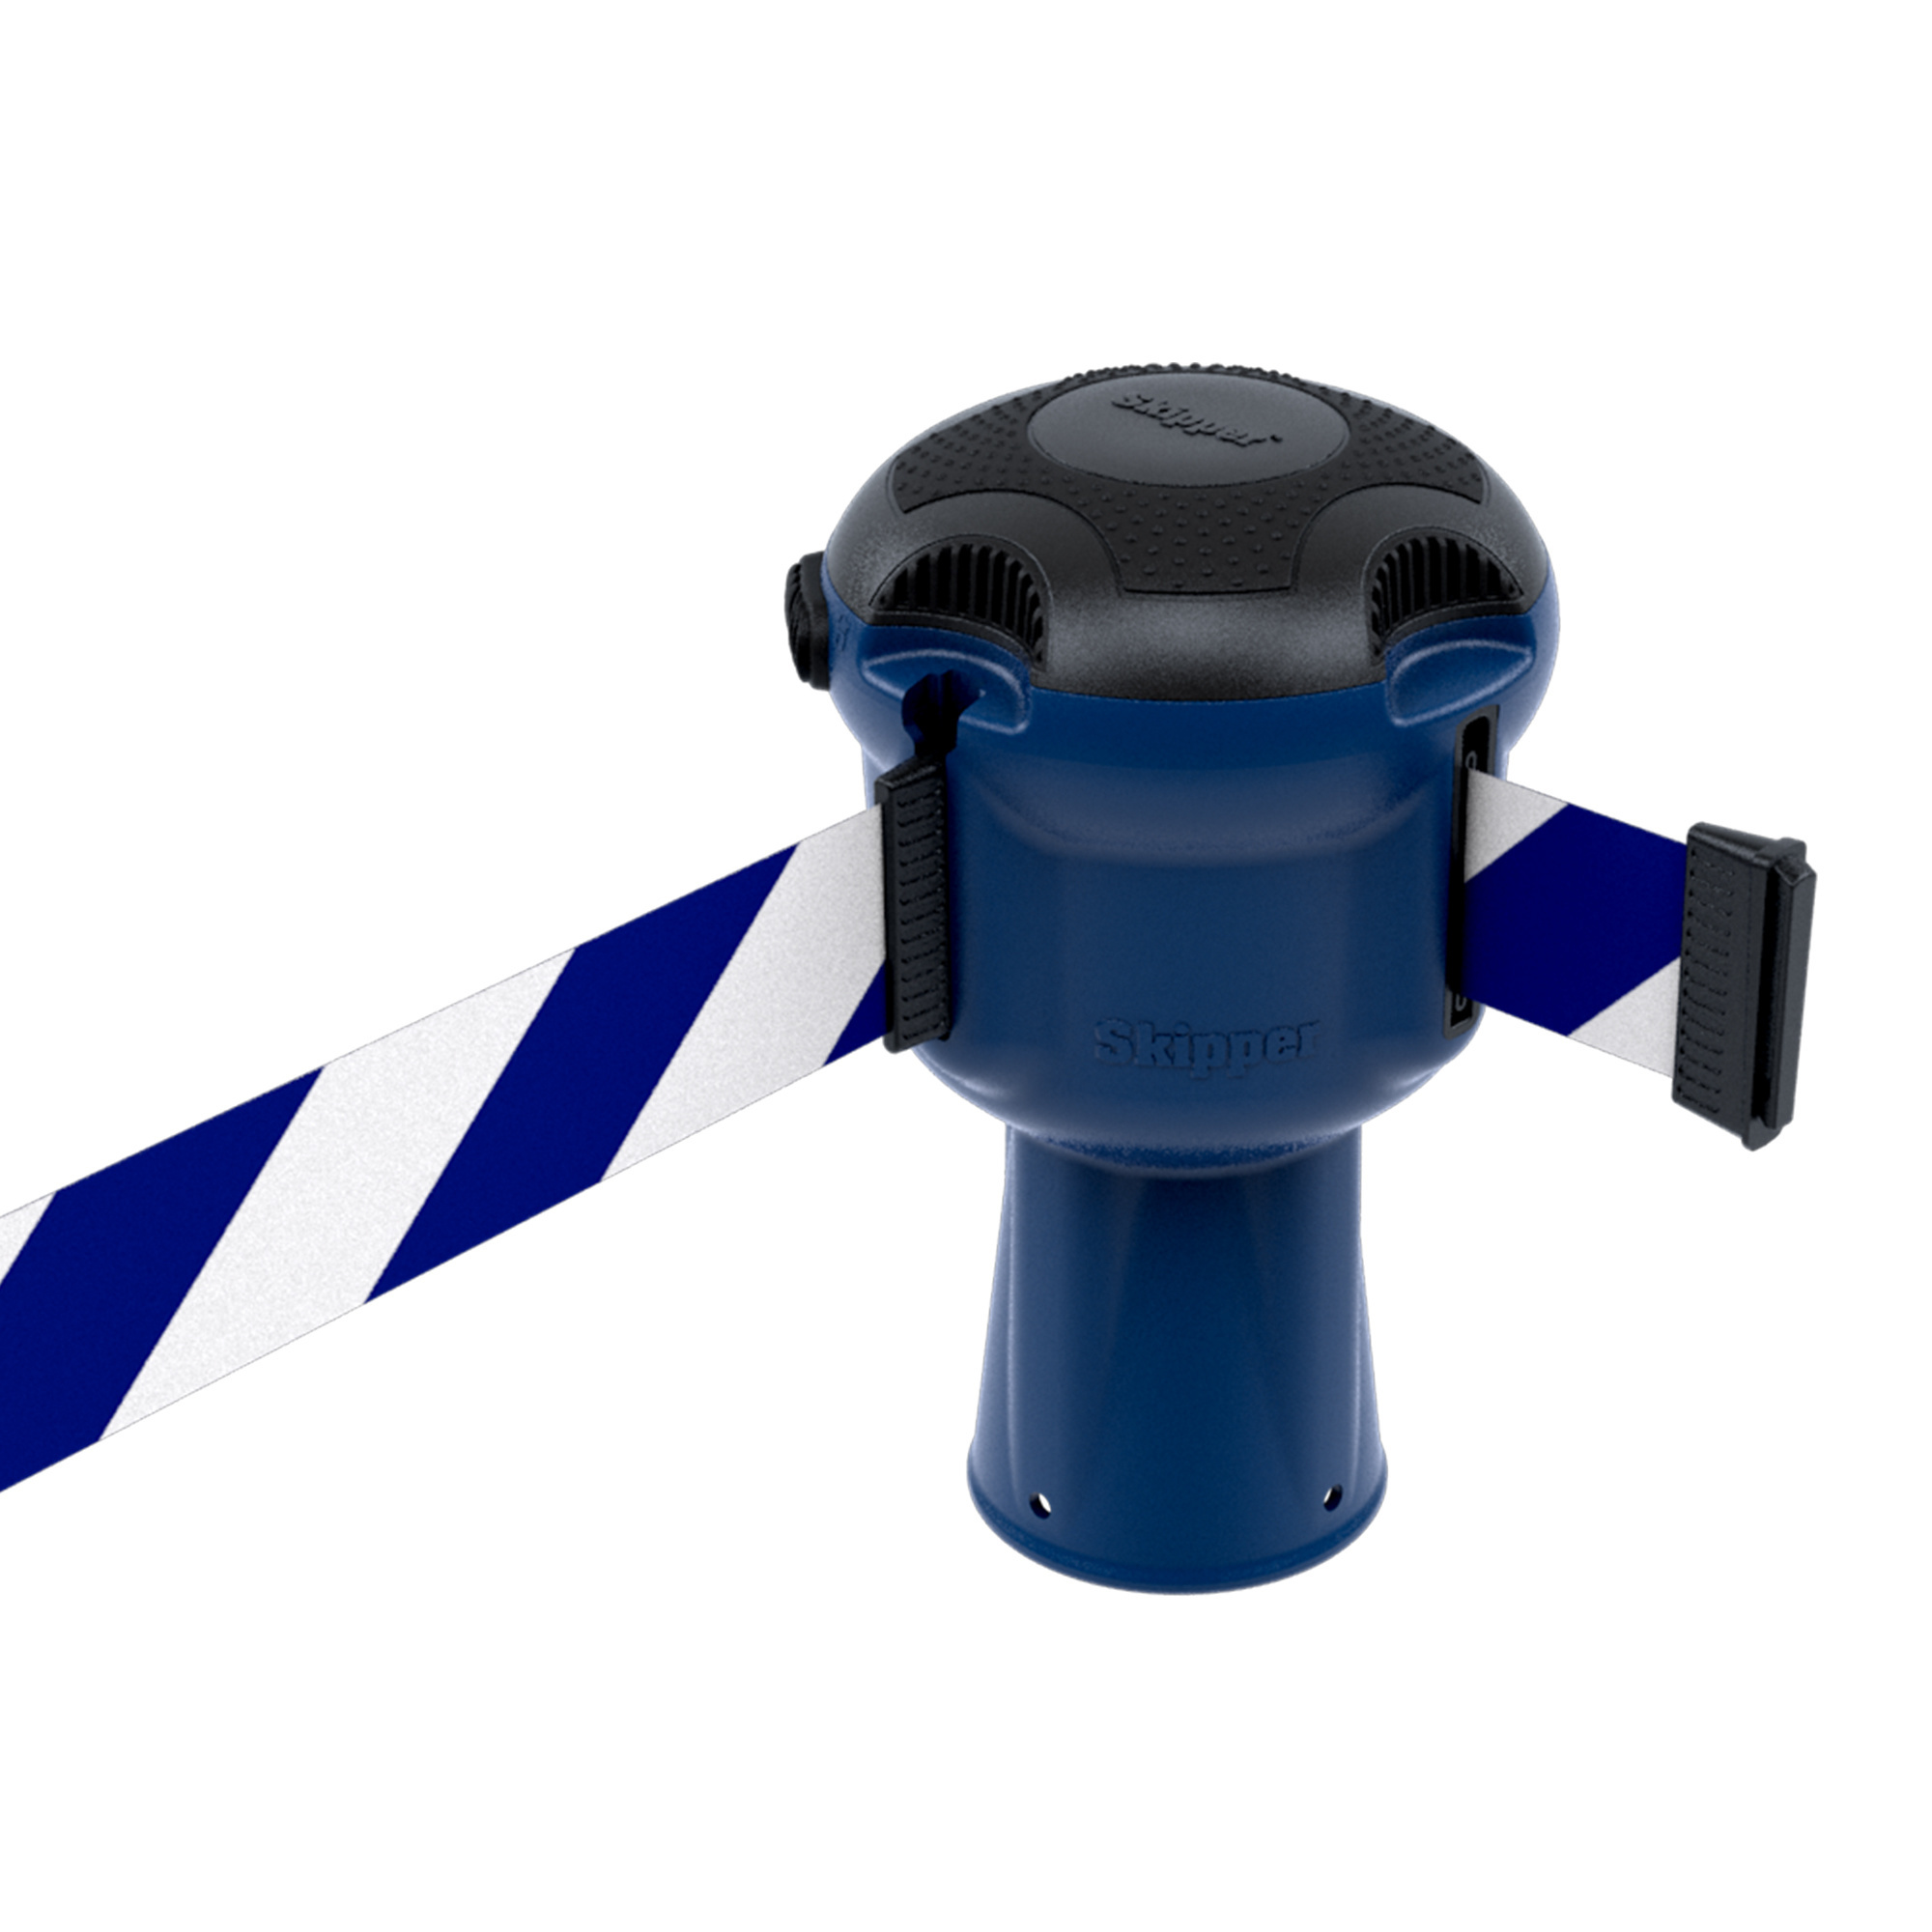 SKIPPER Blue SKIPPER unit  with 9 meters blue/white safety barrier